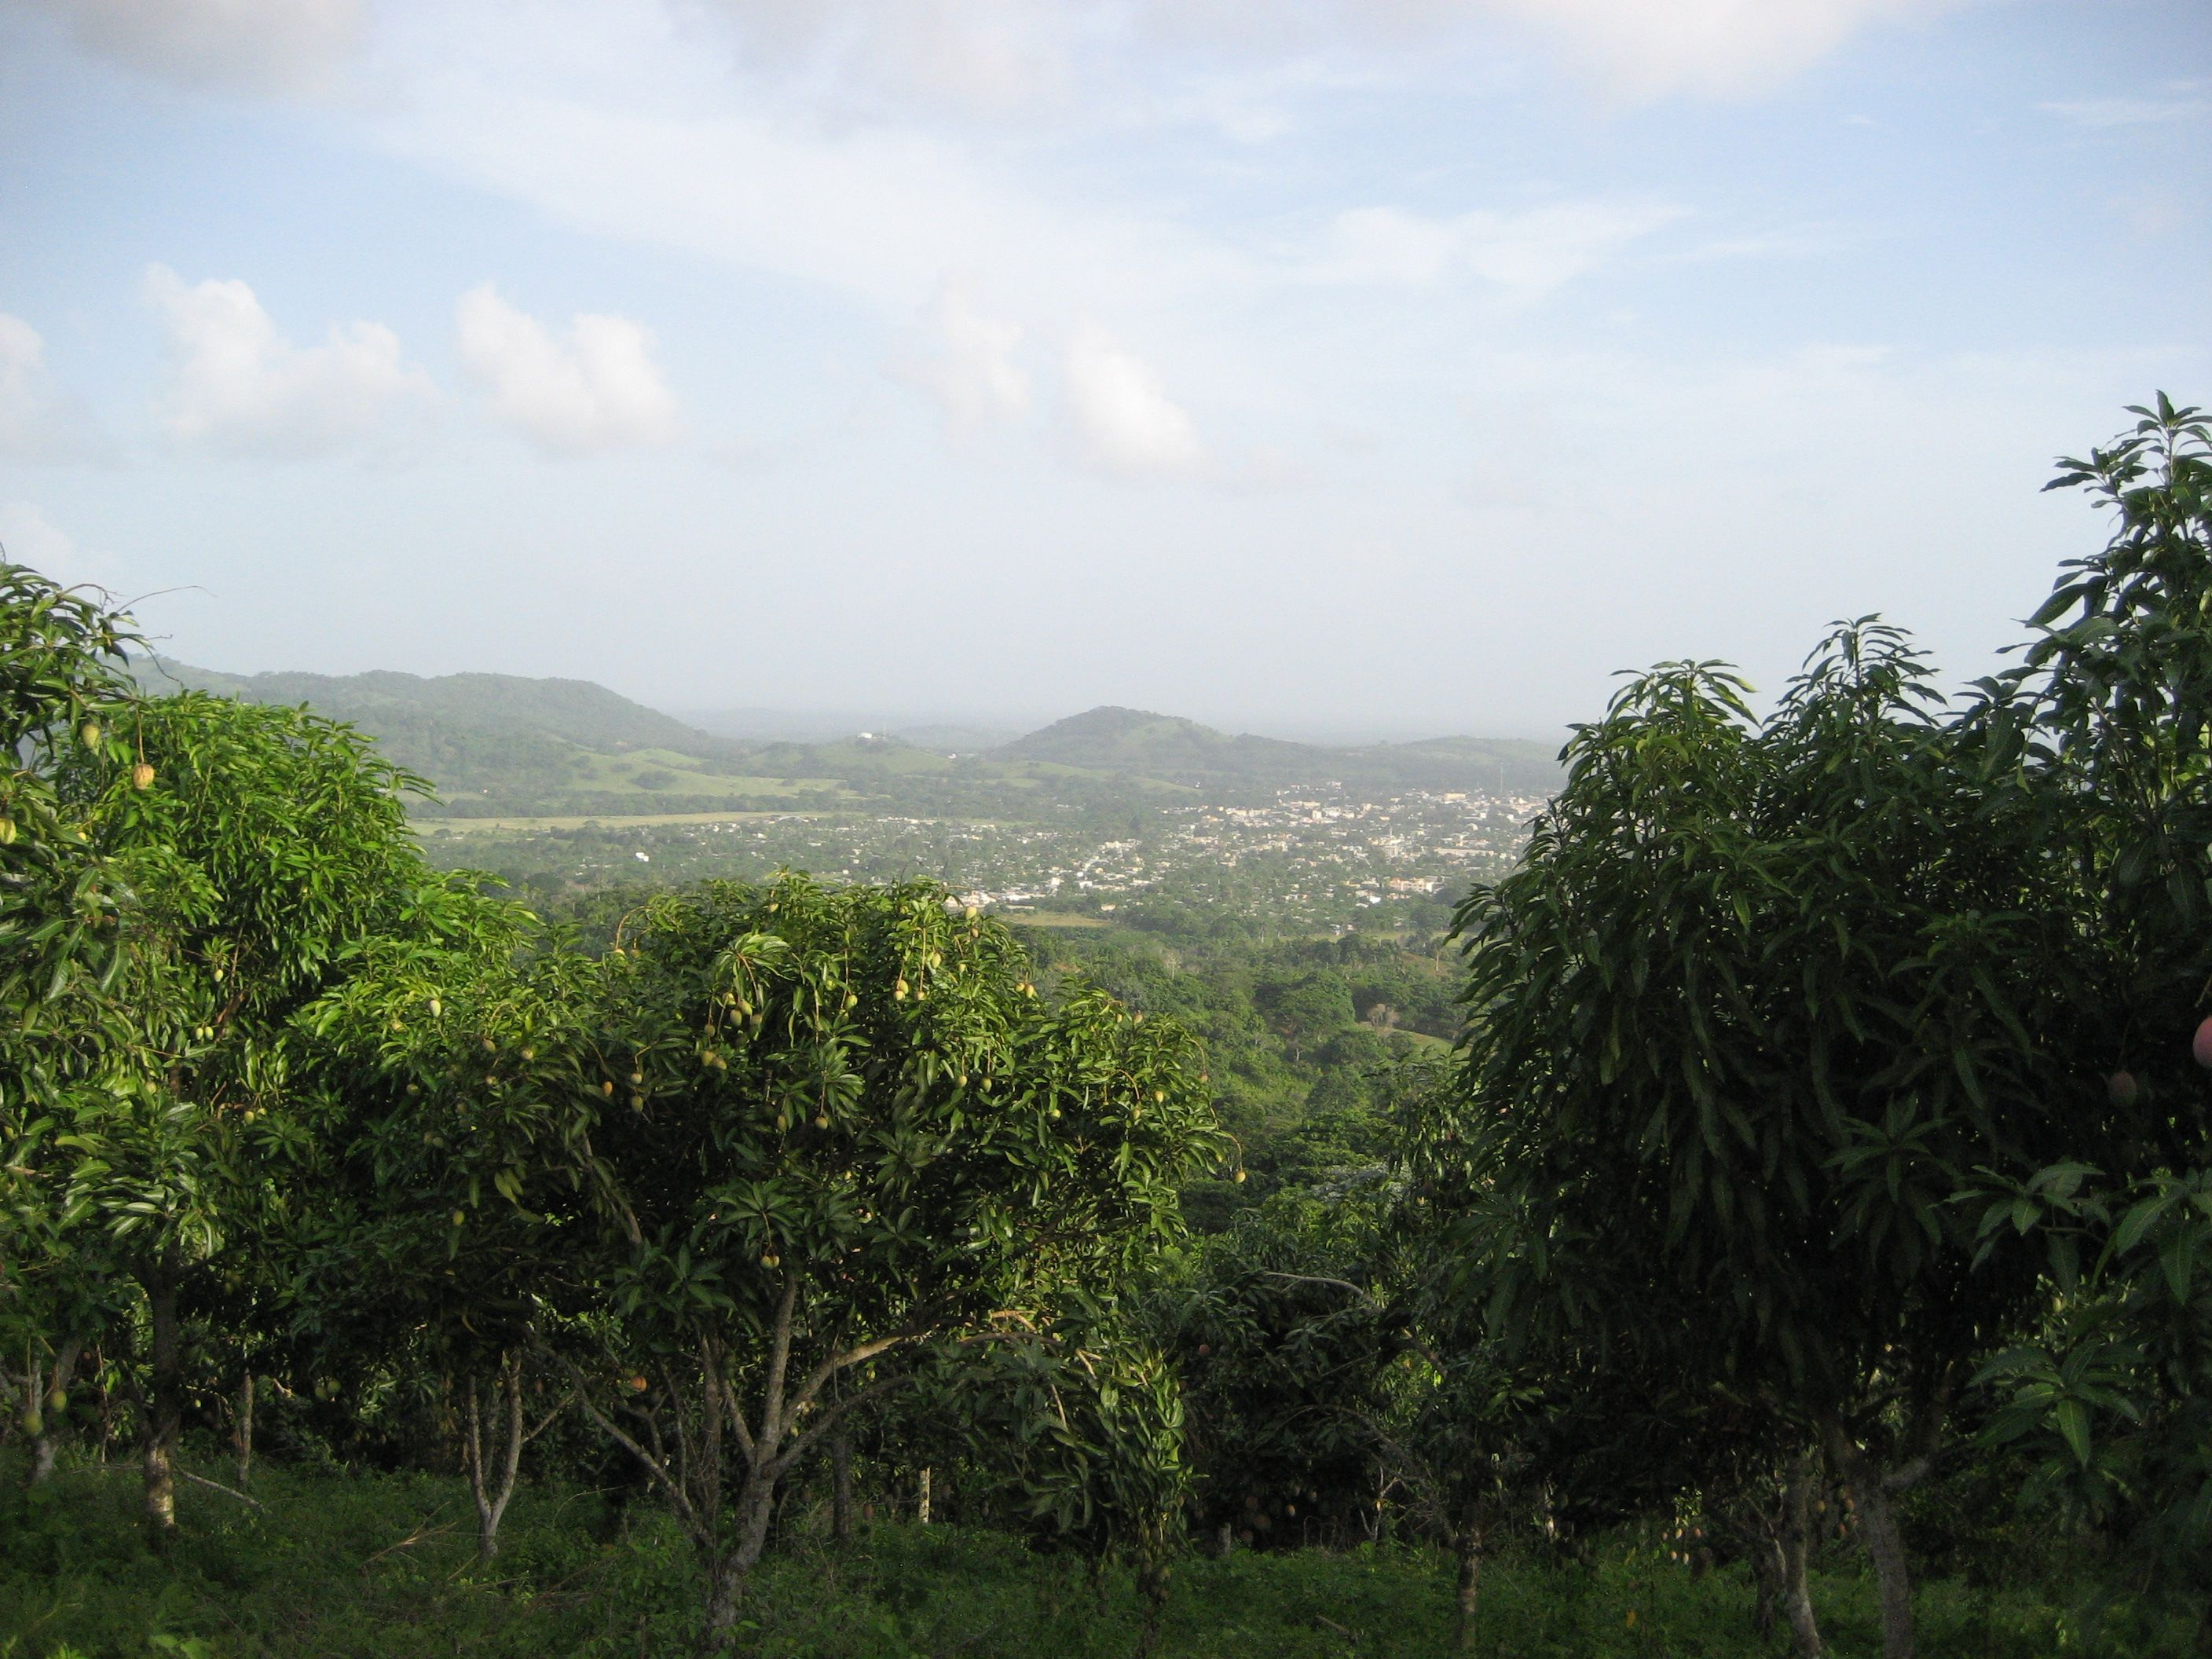 After riding to the top on horse back here is the view overlooking the city of Hato Mayor